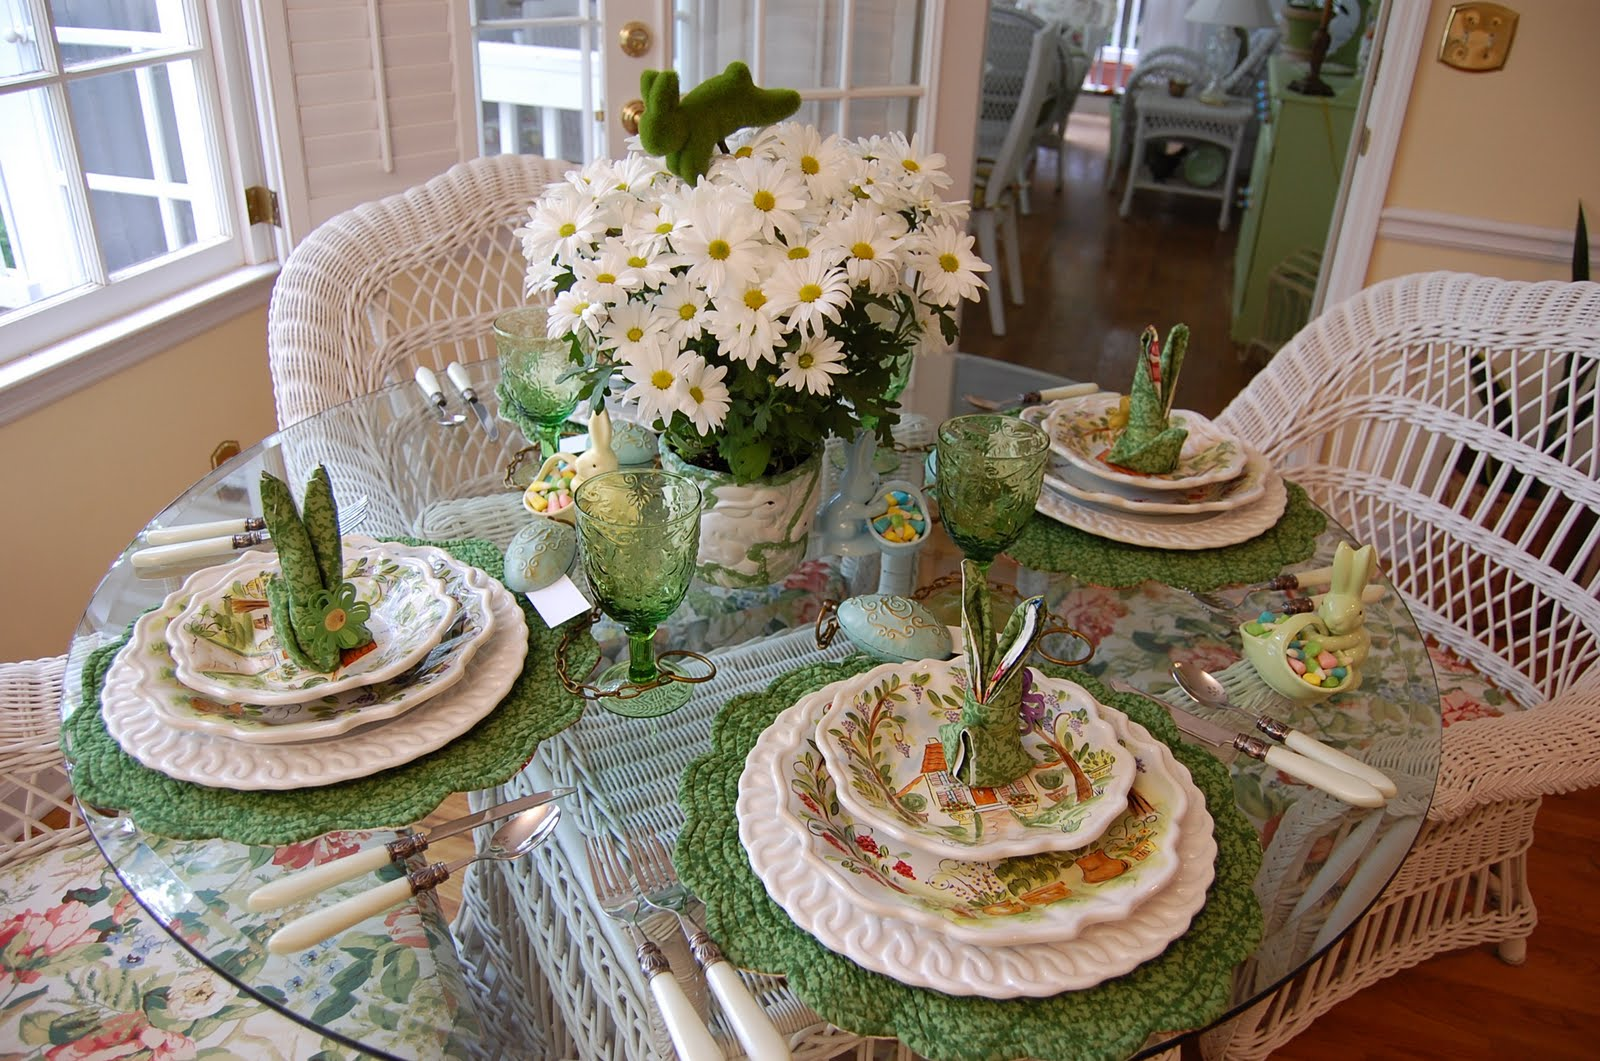 Easter table setting tablescape with floral centerpiece for Easter dinner table setting ideas